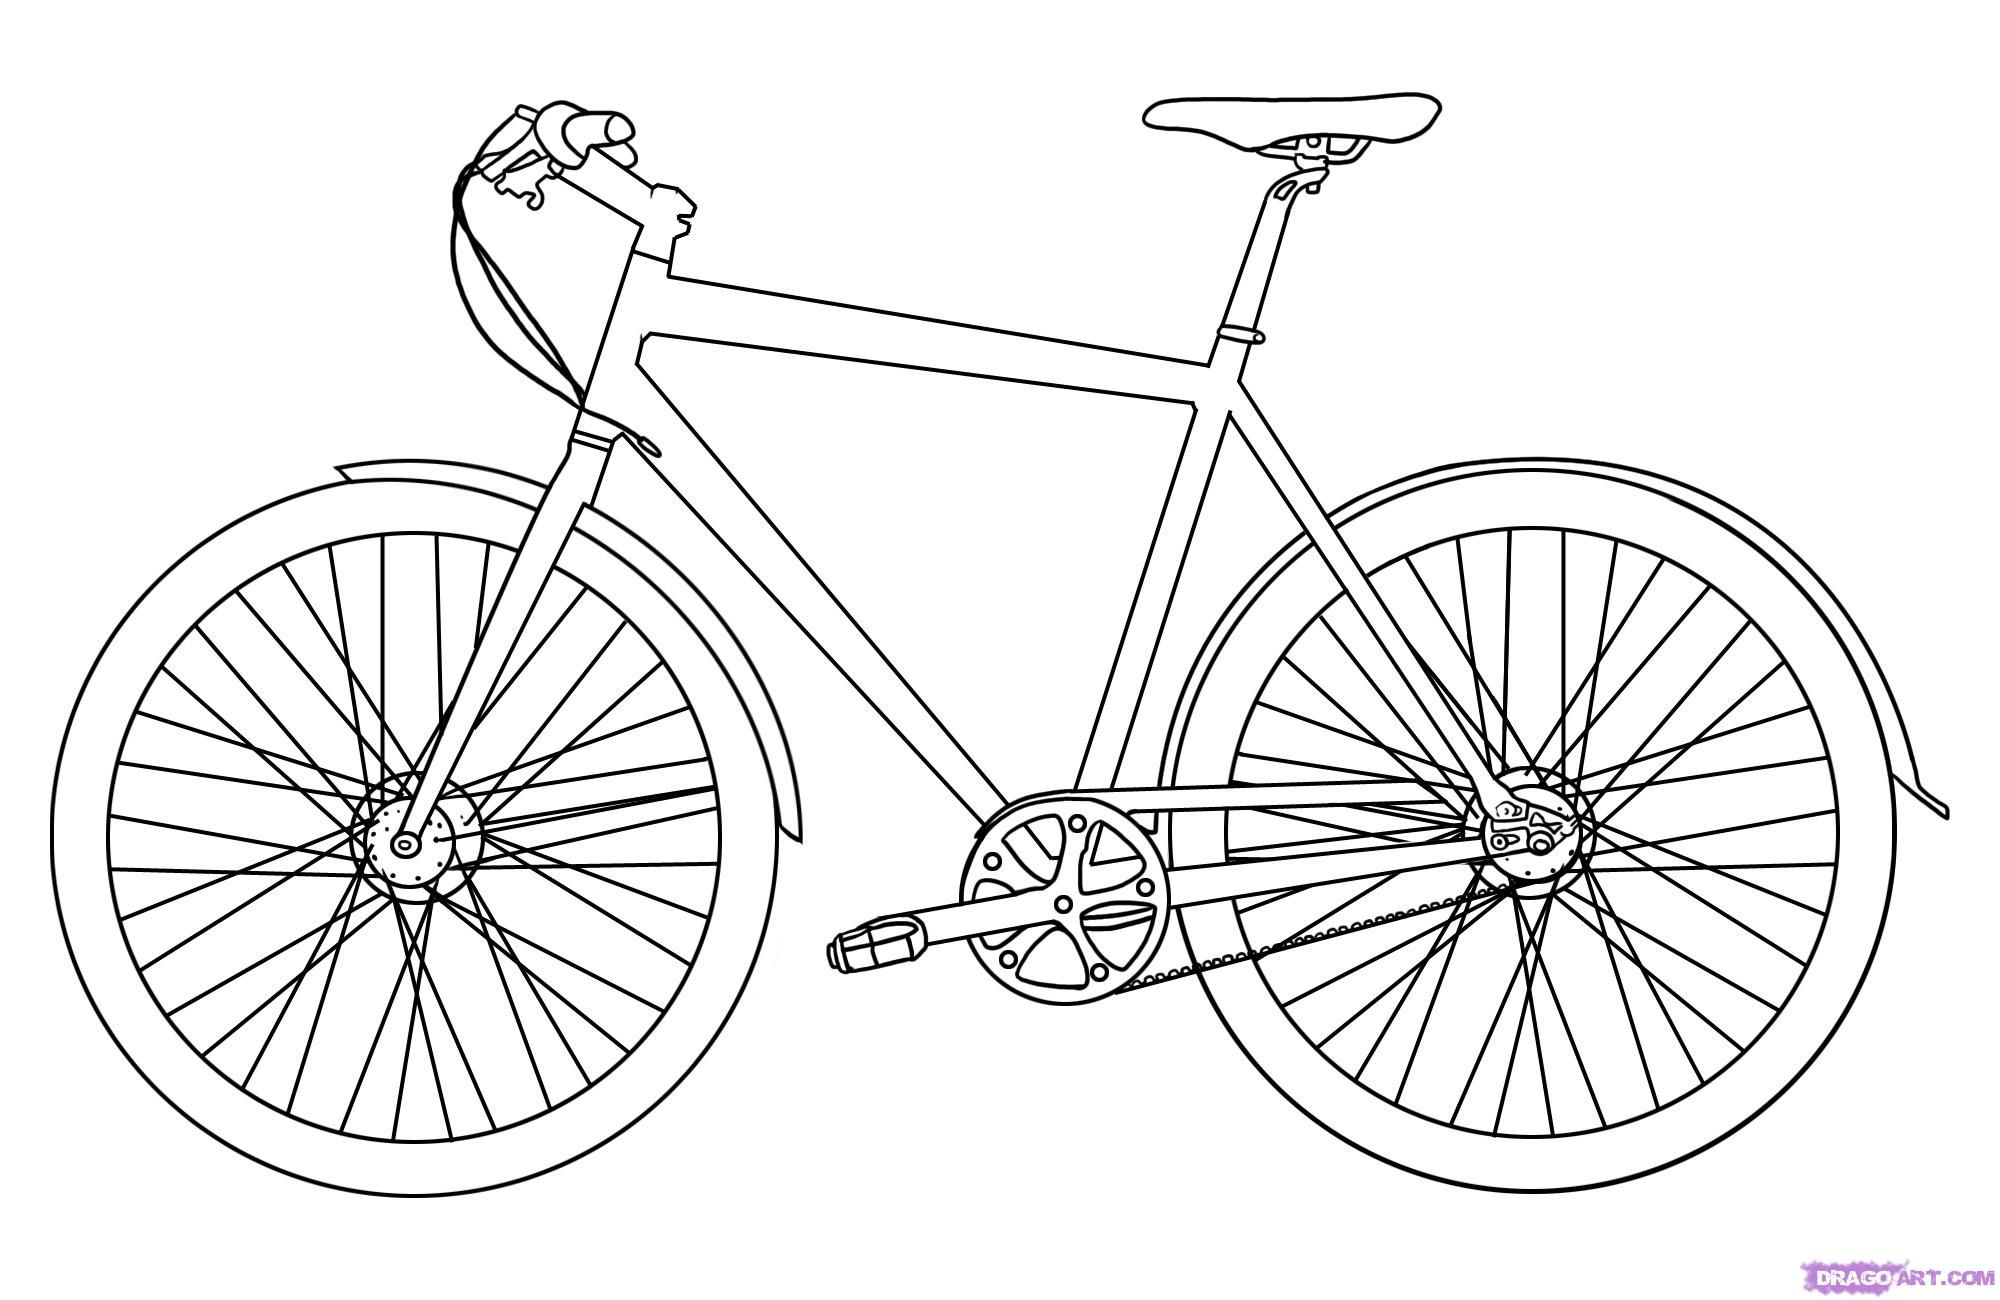 how to draw bicycle cycle clipart electric bicycle cycle electric bicycle how to draw bicycle